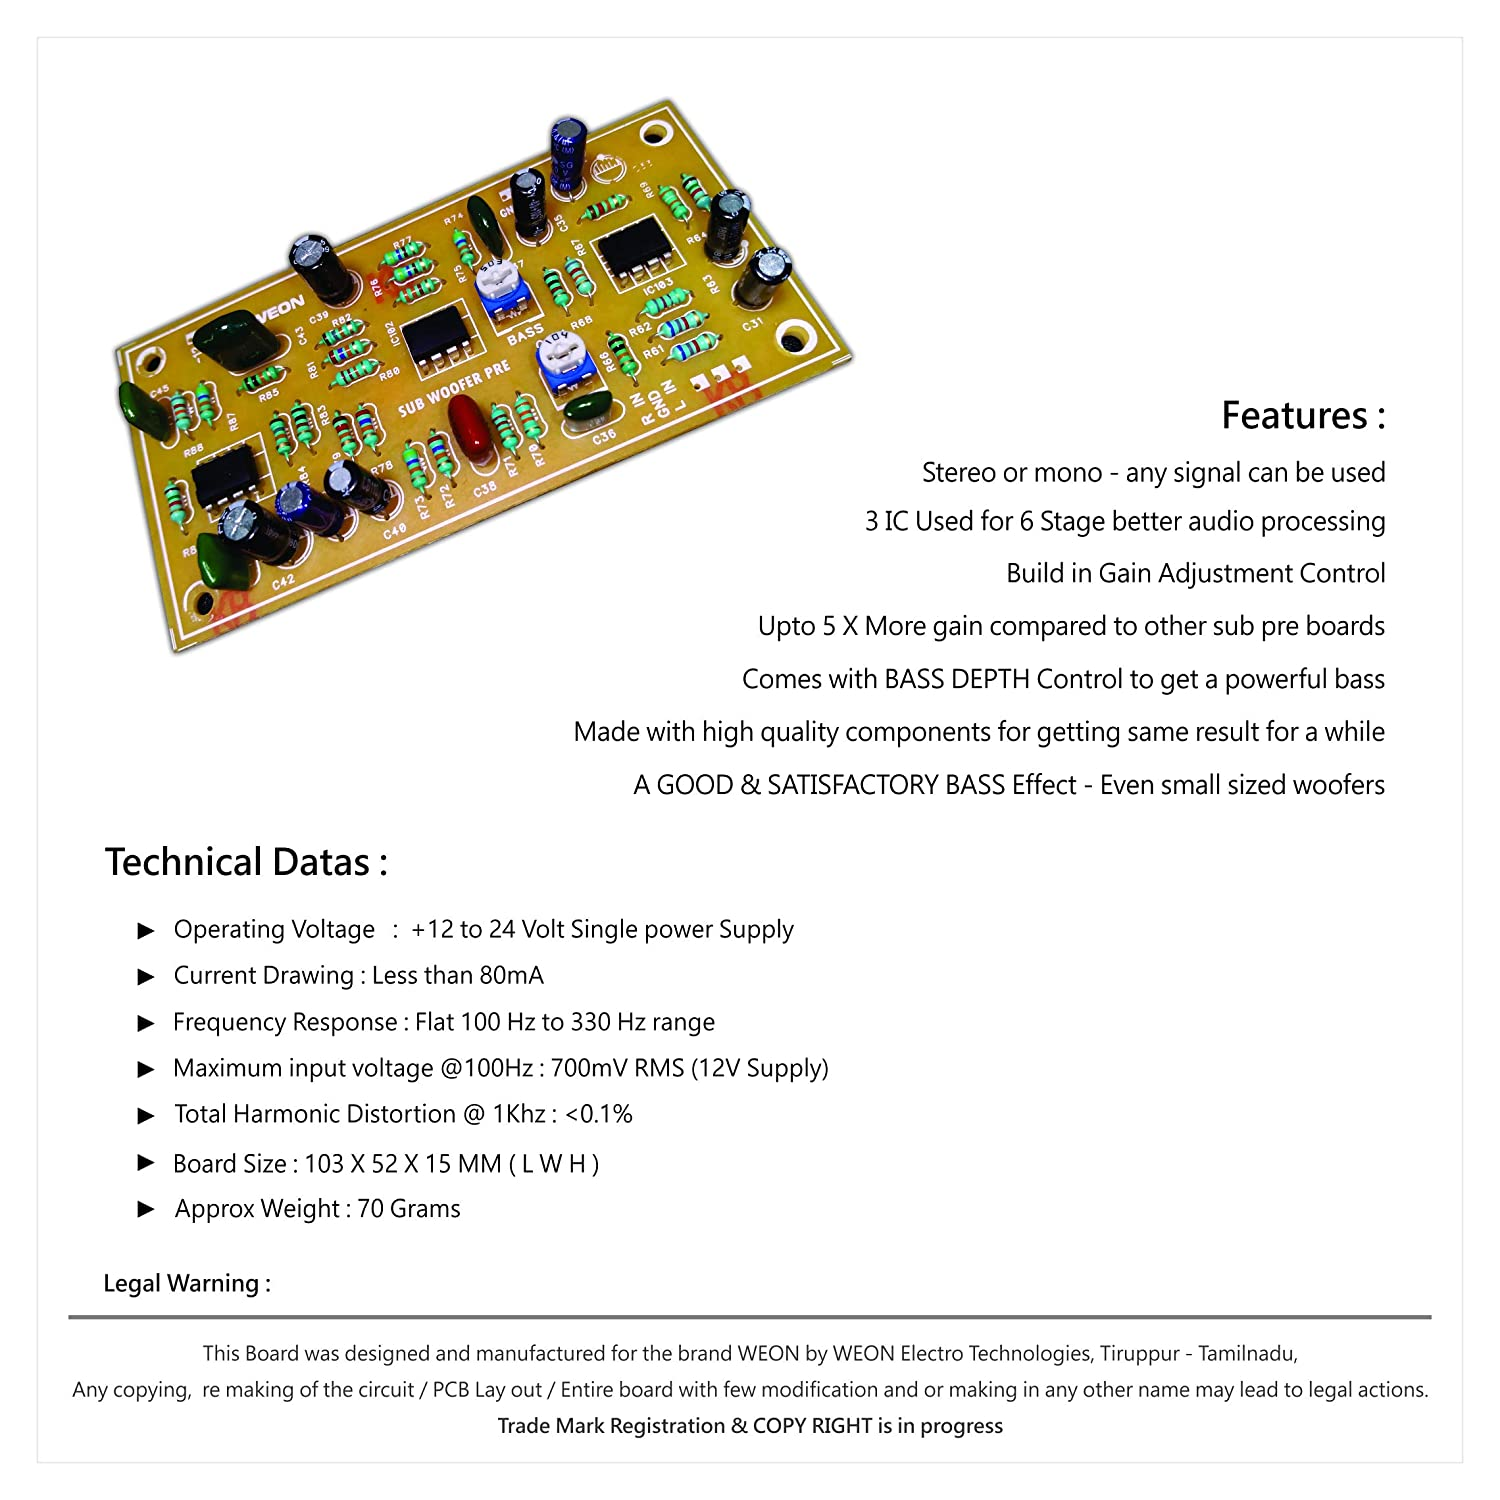 WEON Sub Woofer Pre Amp Board KIT with Triple ICS